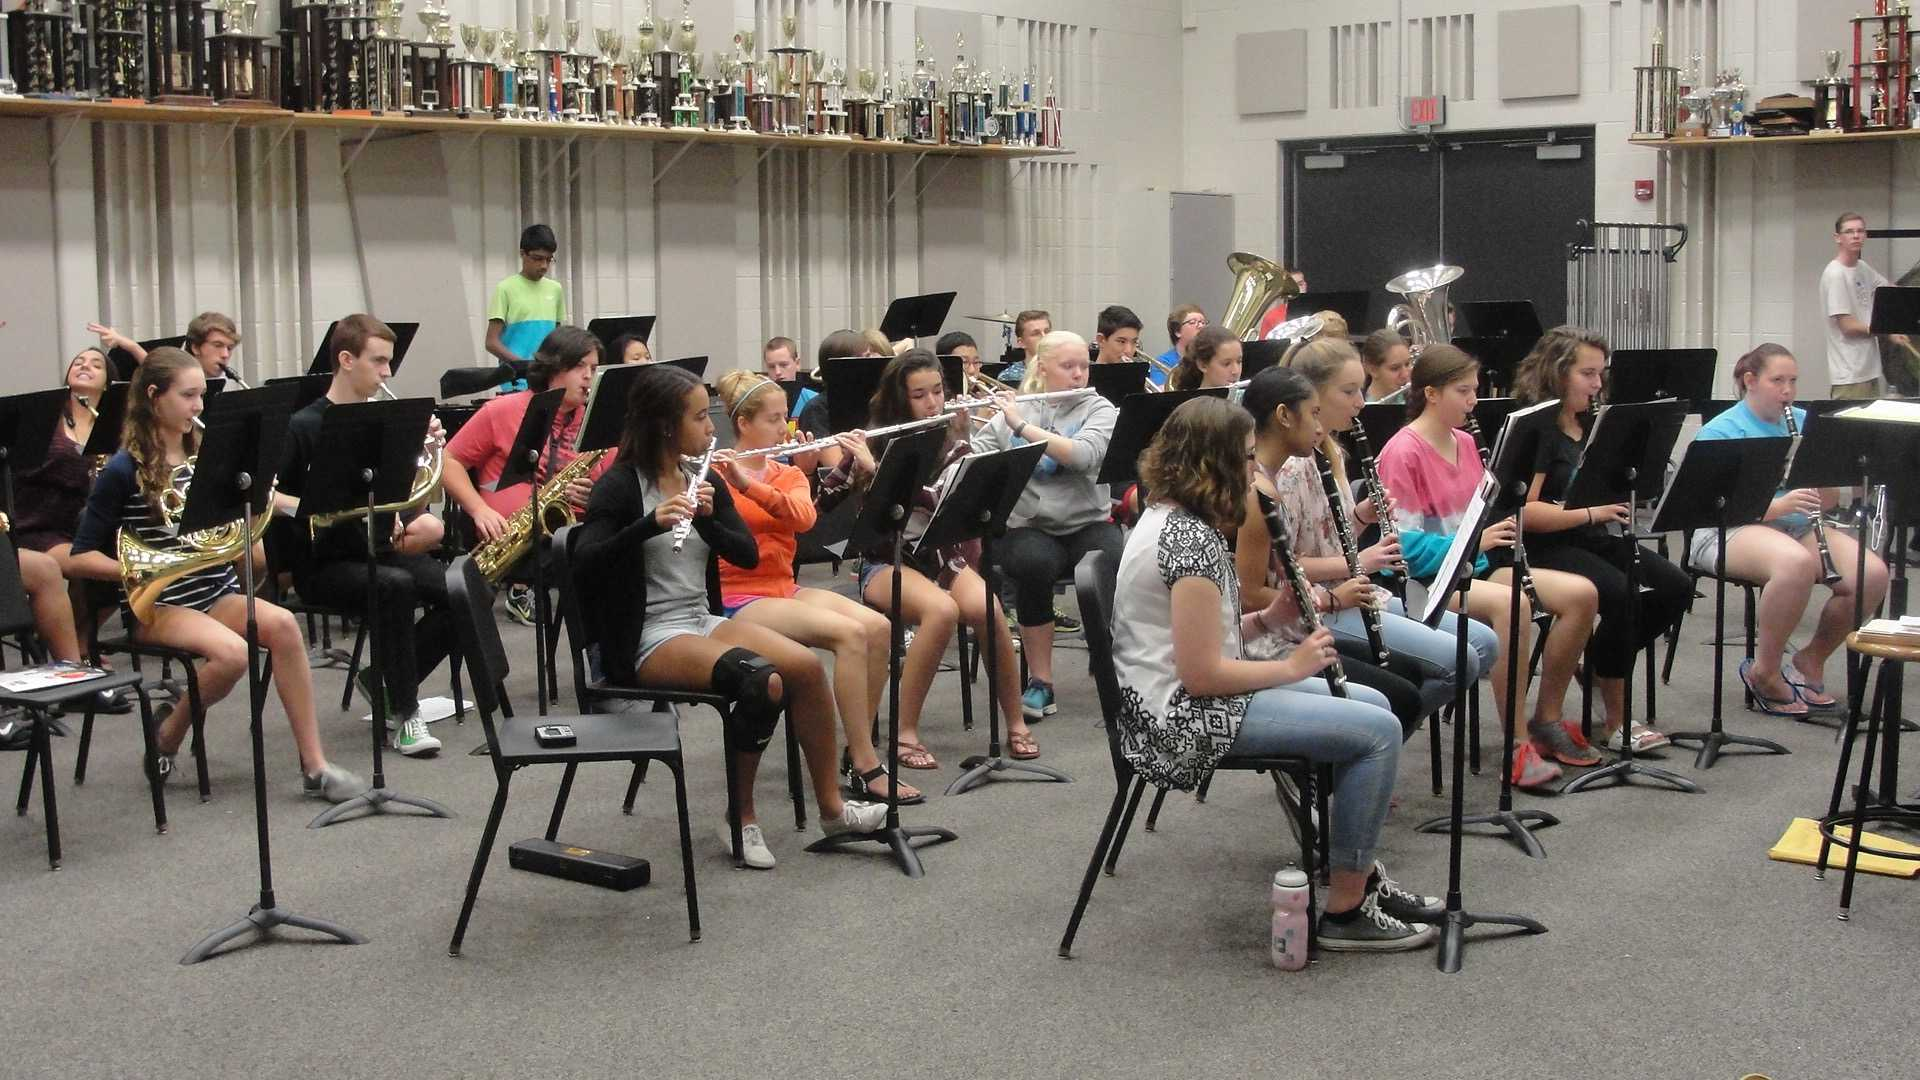 The Symphonic Winds band plays their hearts out. (Sept. 21-25)